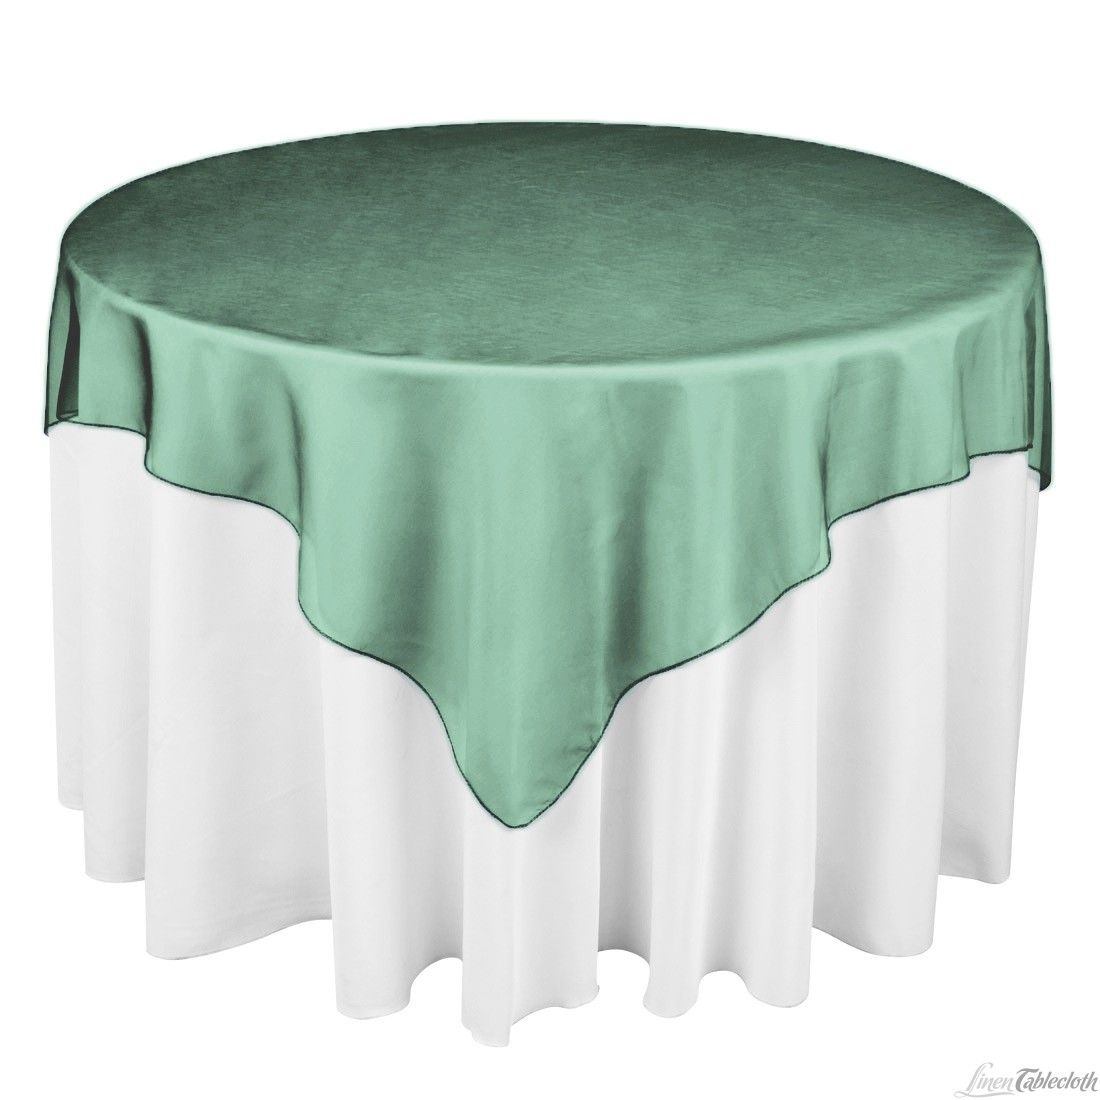 72 Inch Round Tablecloth Inch Round Mahogany Dining Table